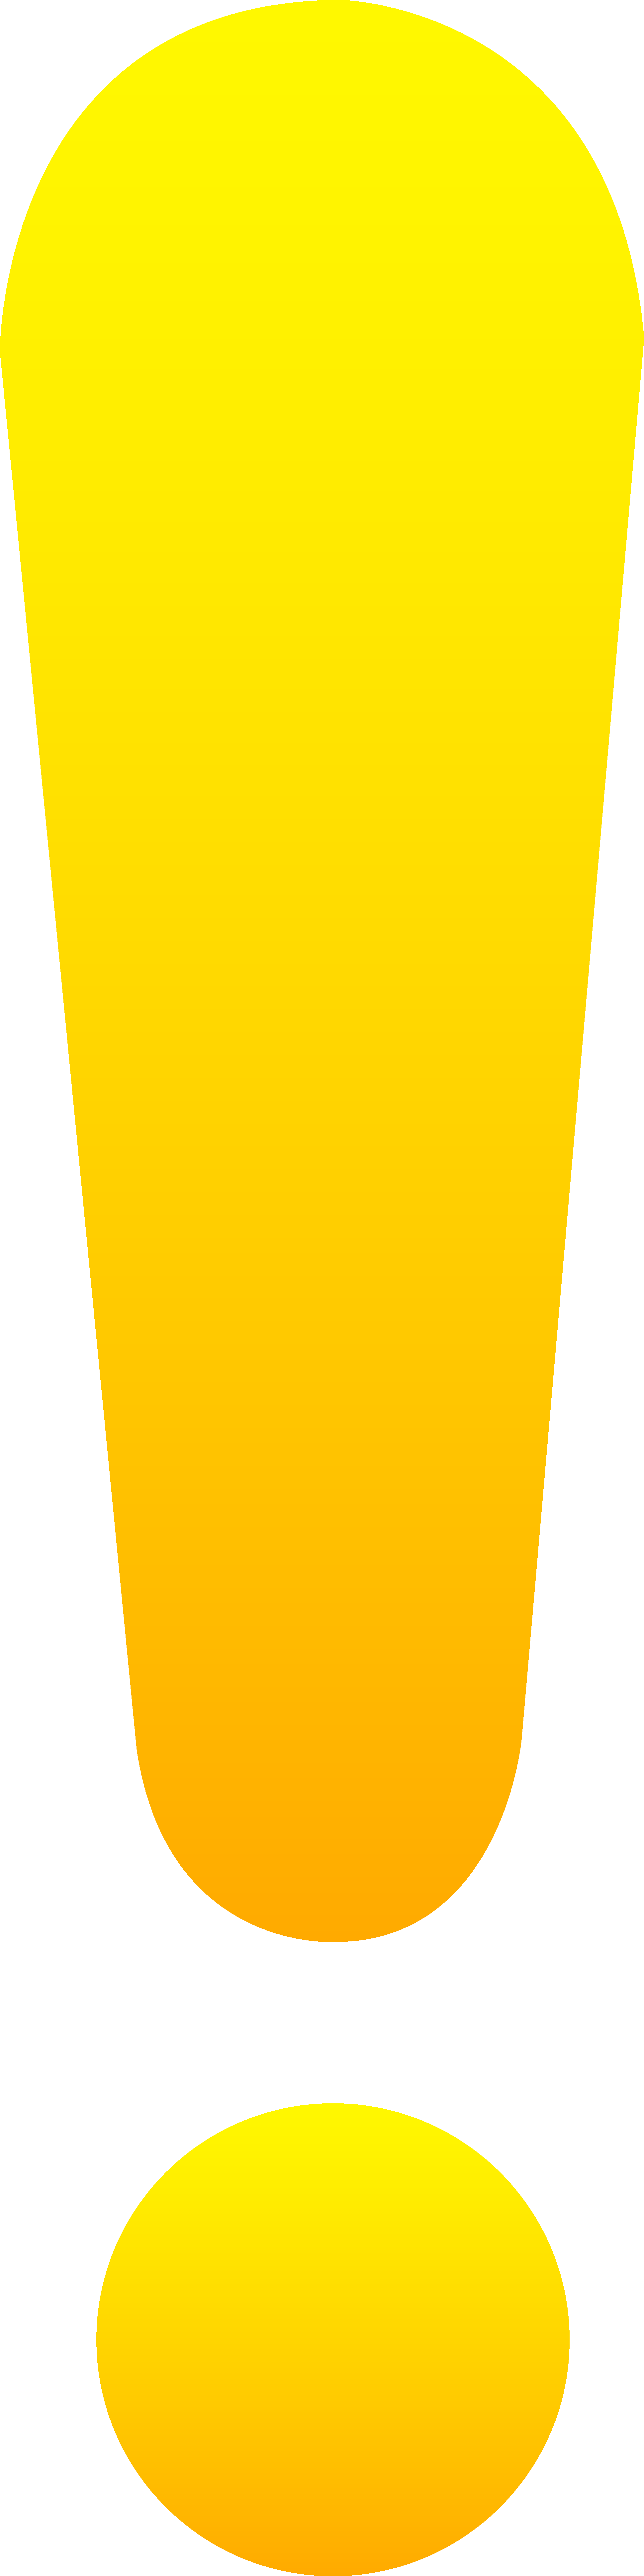 Simple Yellow Exclamation Point Free Png